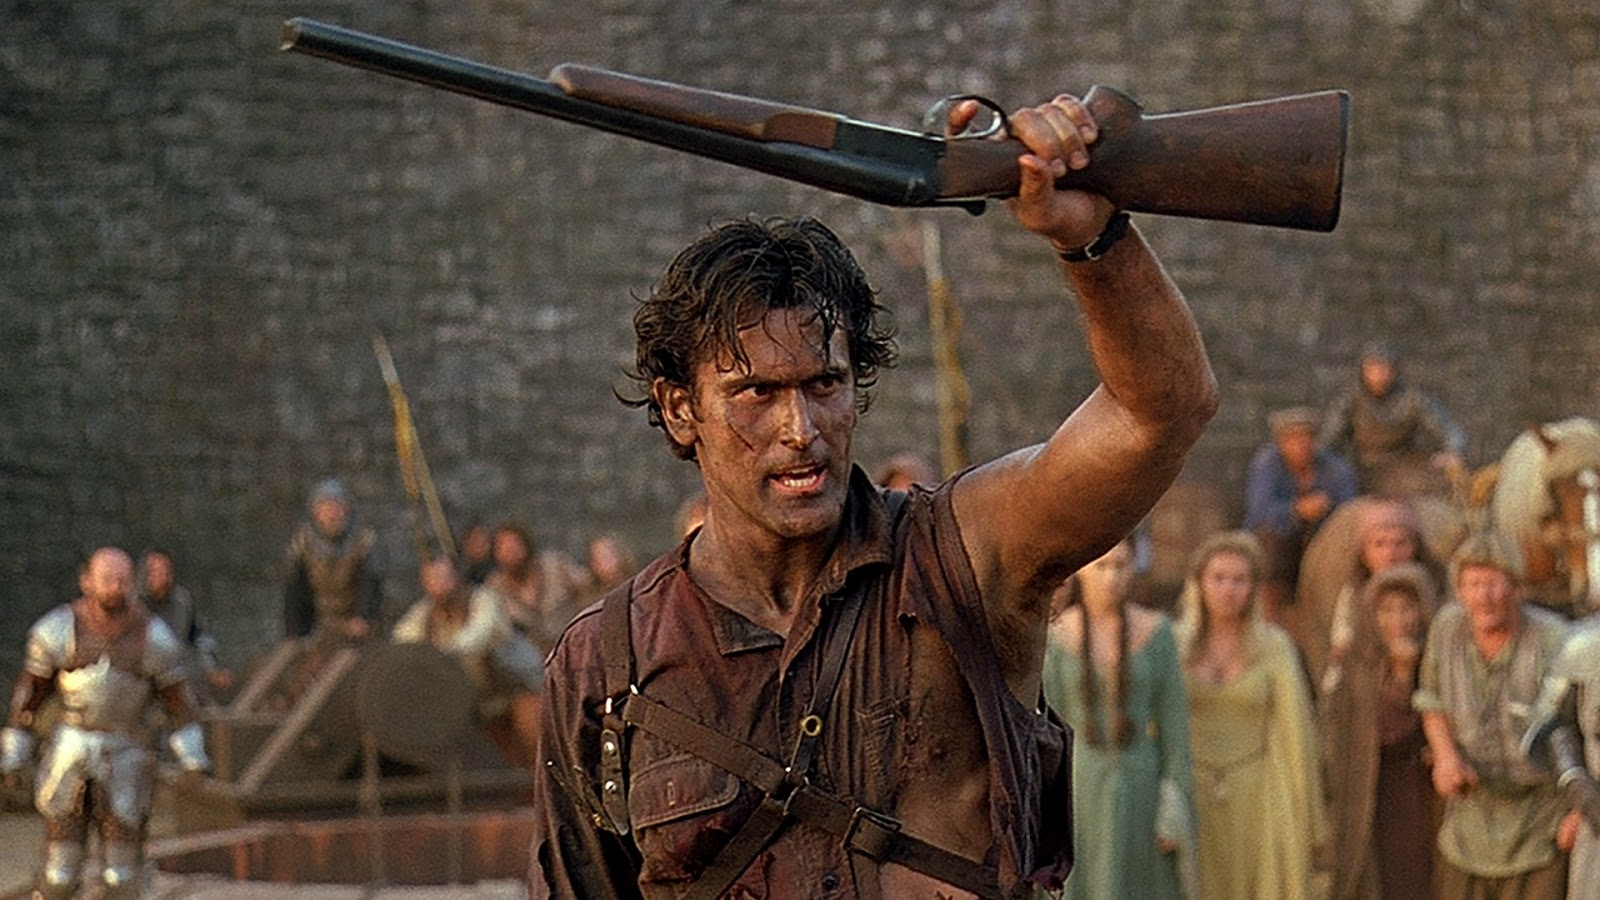 Bruce Campbell thrown back to Mediaeval times in Army of Darkness (1992)